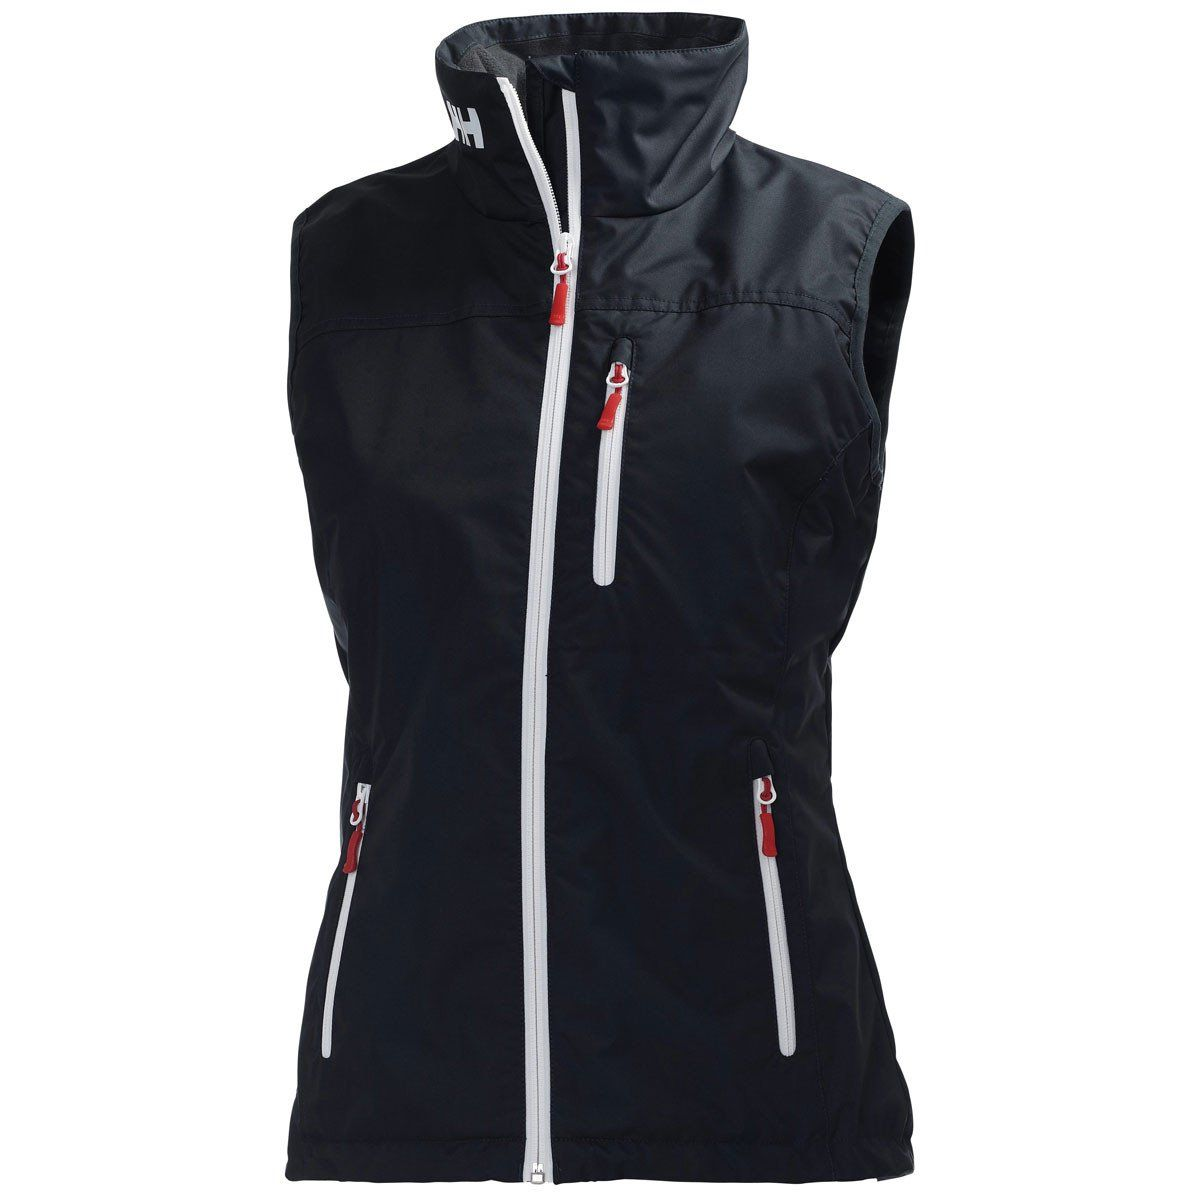 Photo of Helly Hansen Girls's Navy Crew Vest